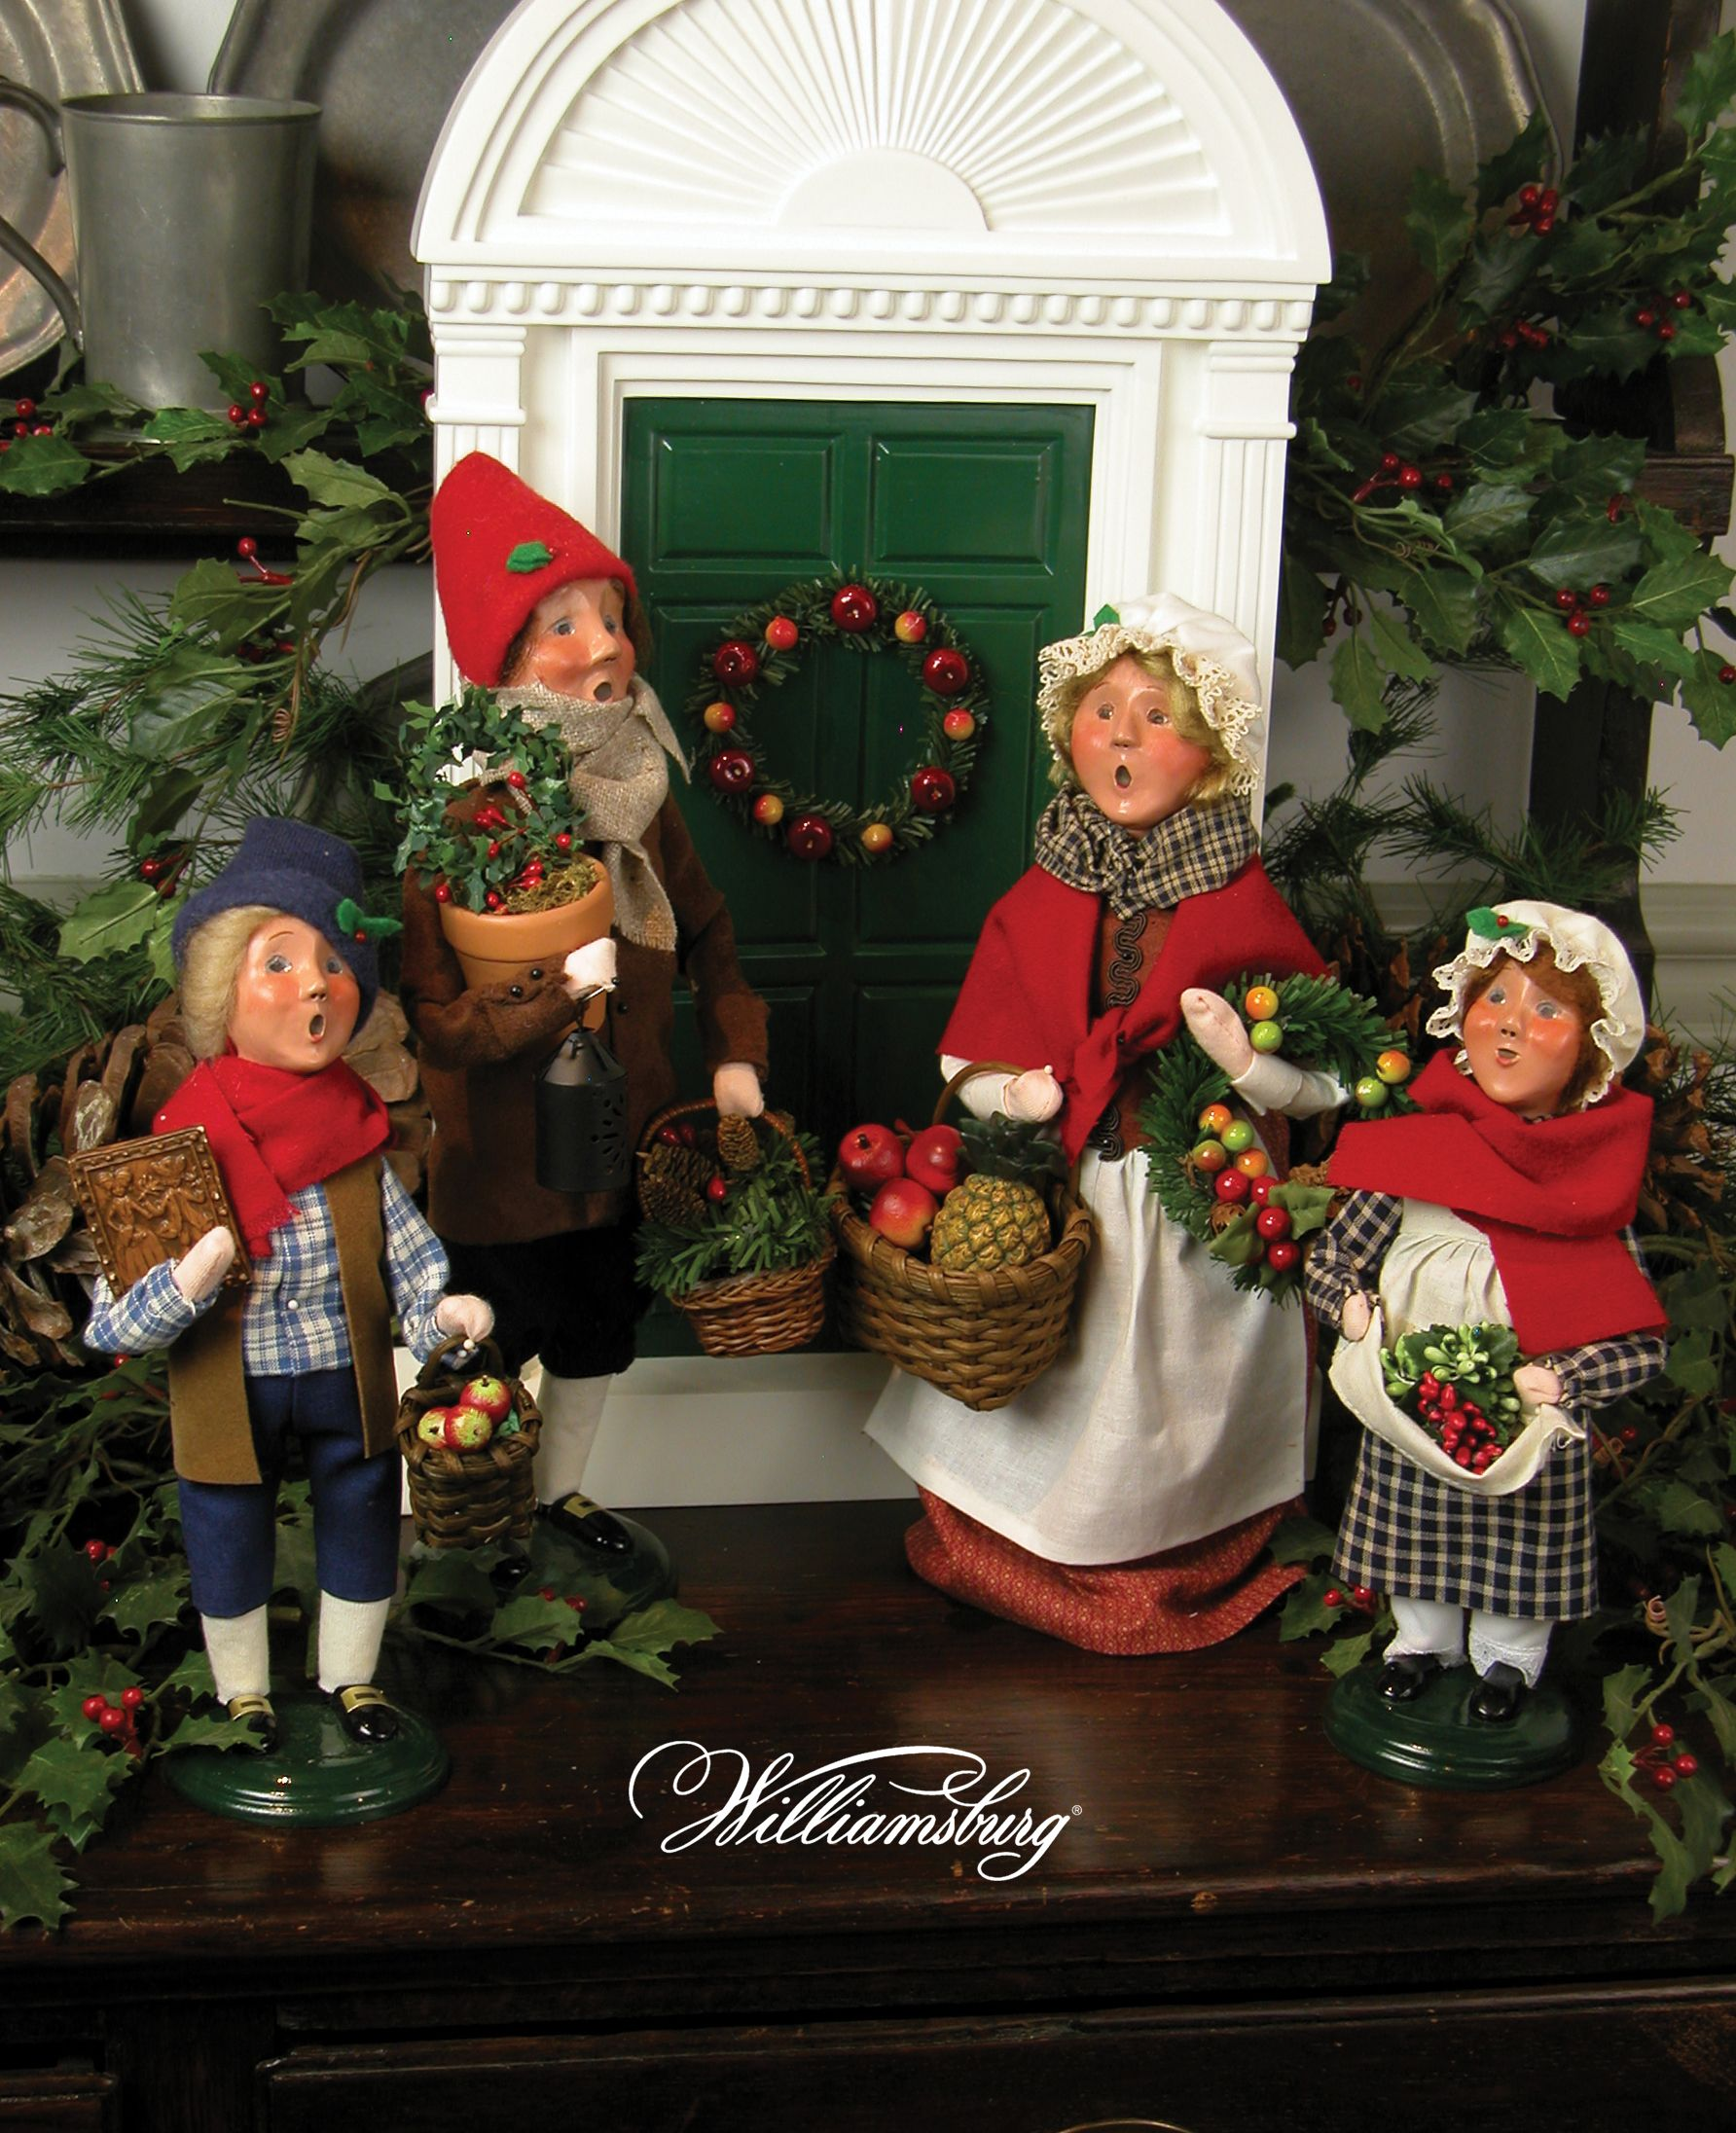 Decoration Ideas Are Christmas Carolers Decorations Needed: Colonial Shopping Family